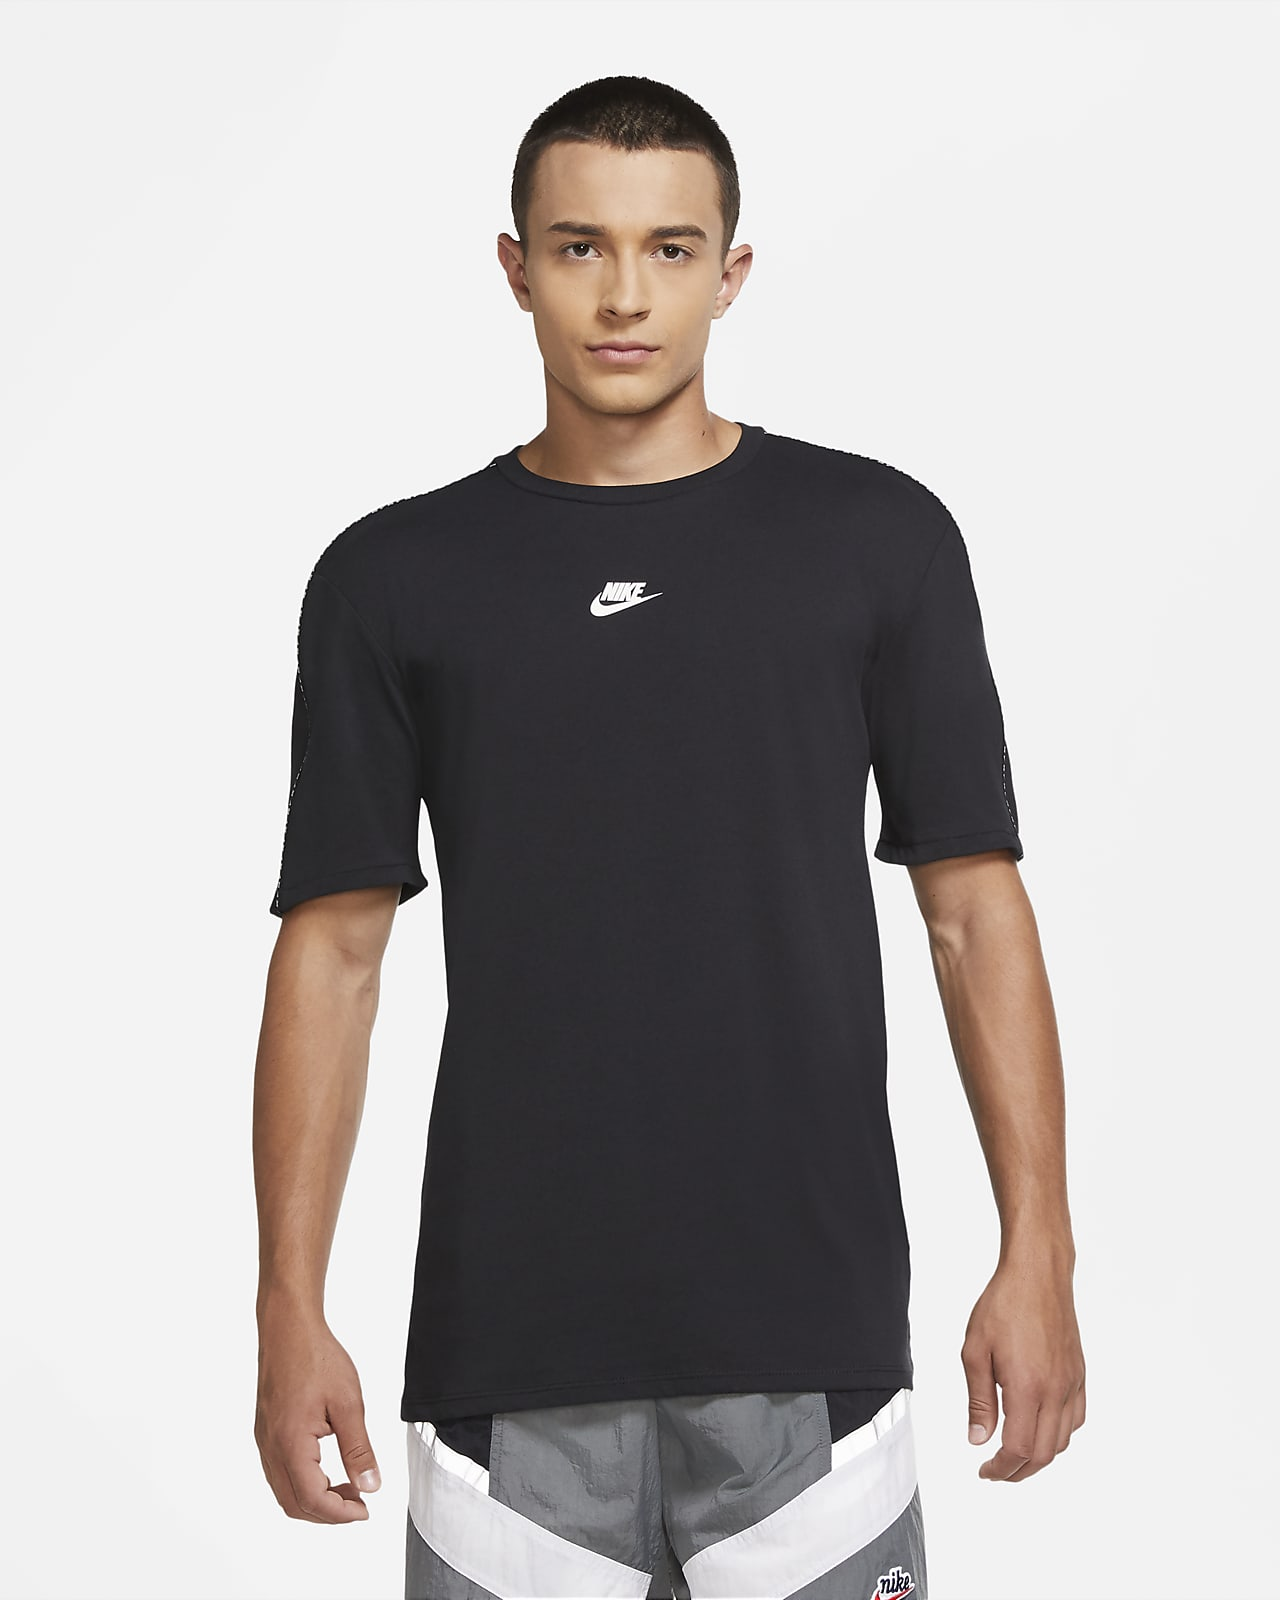 Nike Sportswear Men's Short-Sleeve Top